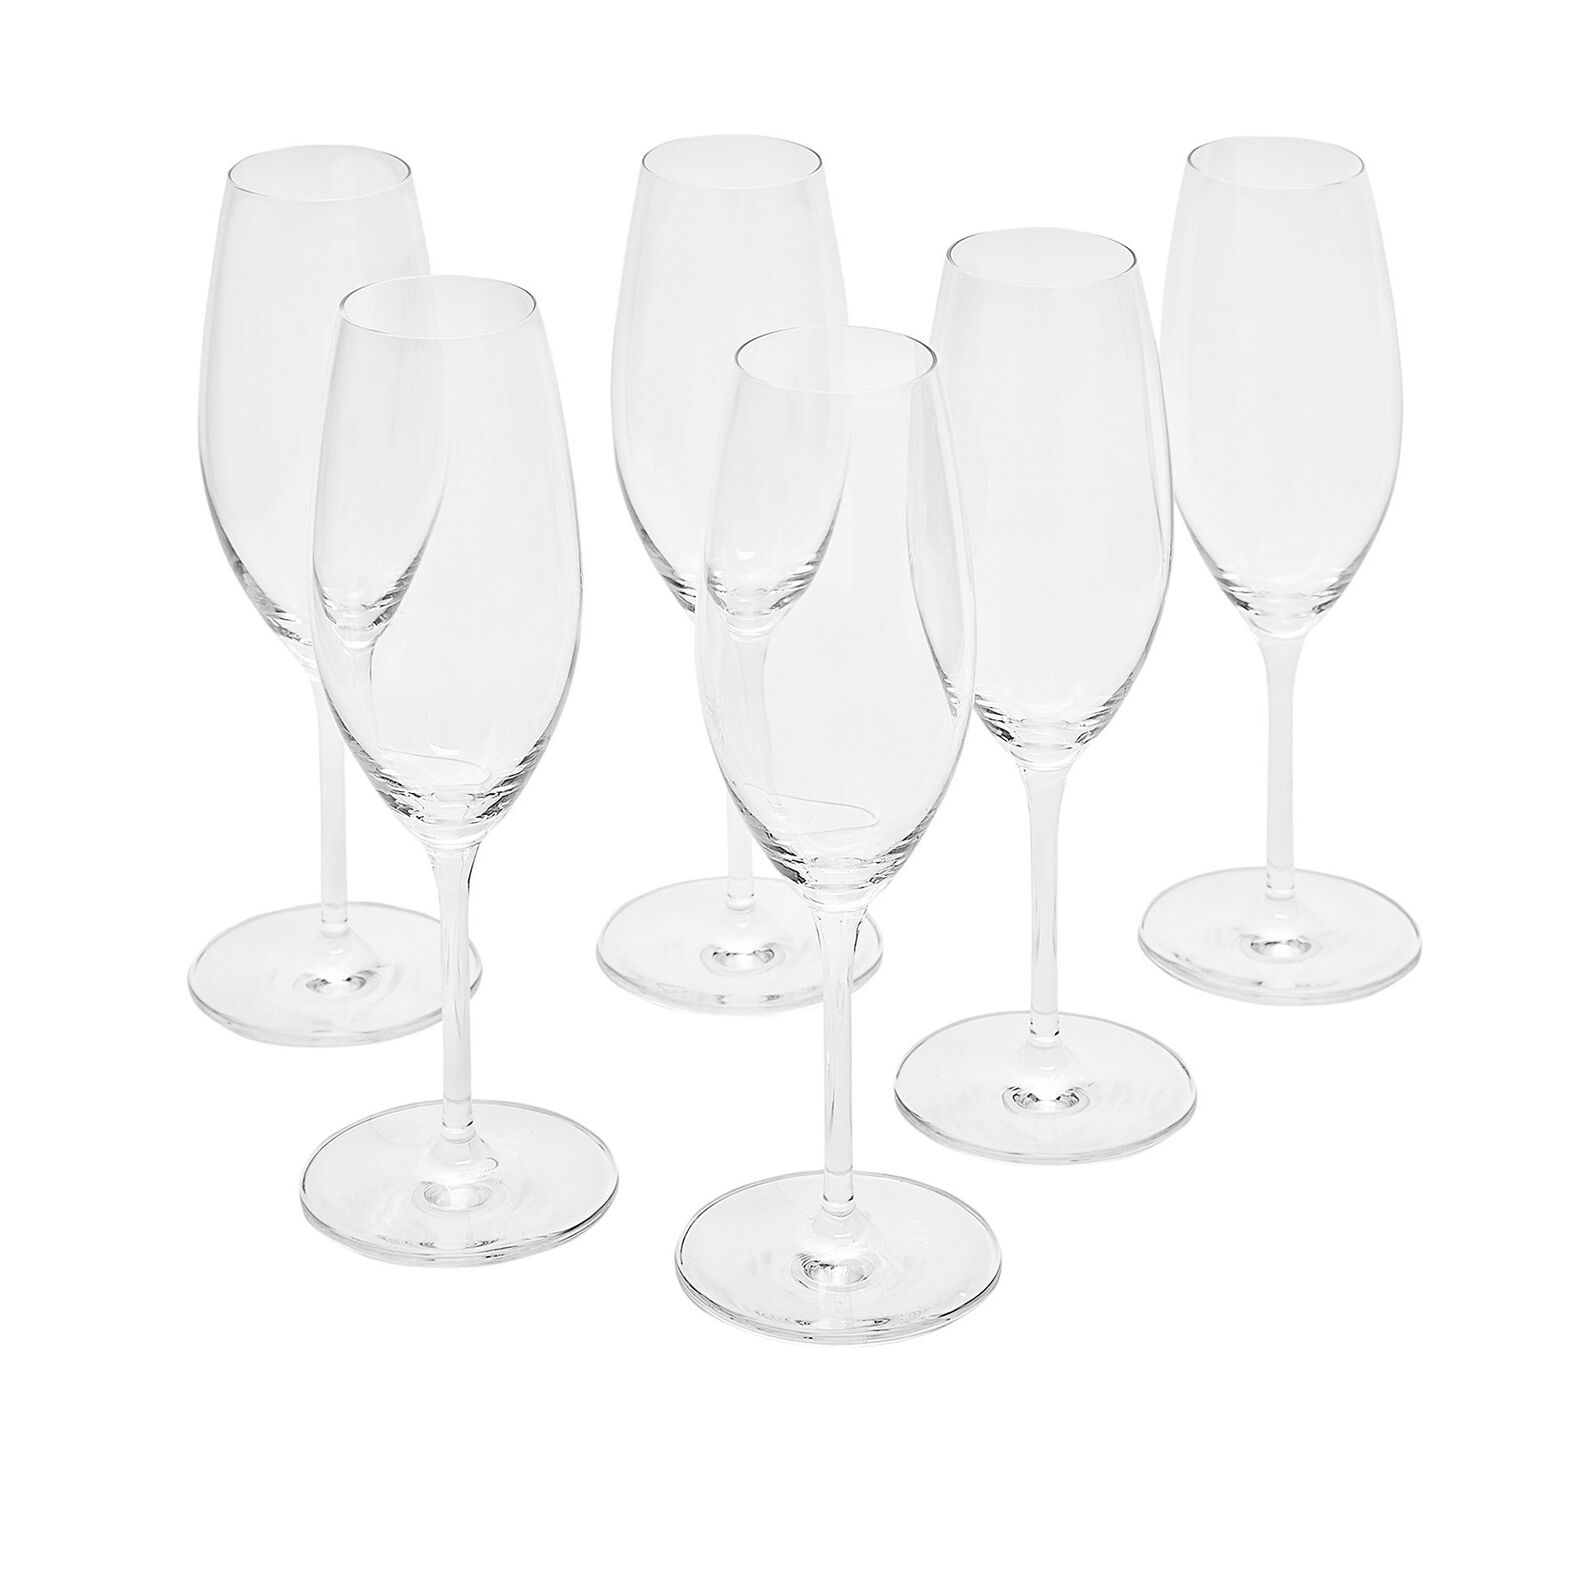 Set of 6 Cru flutes